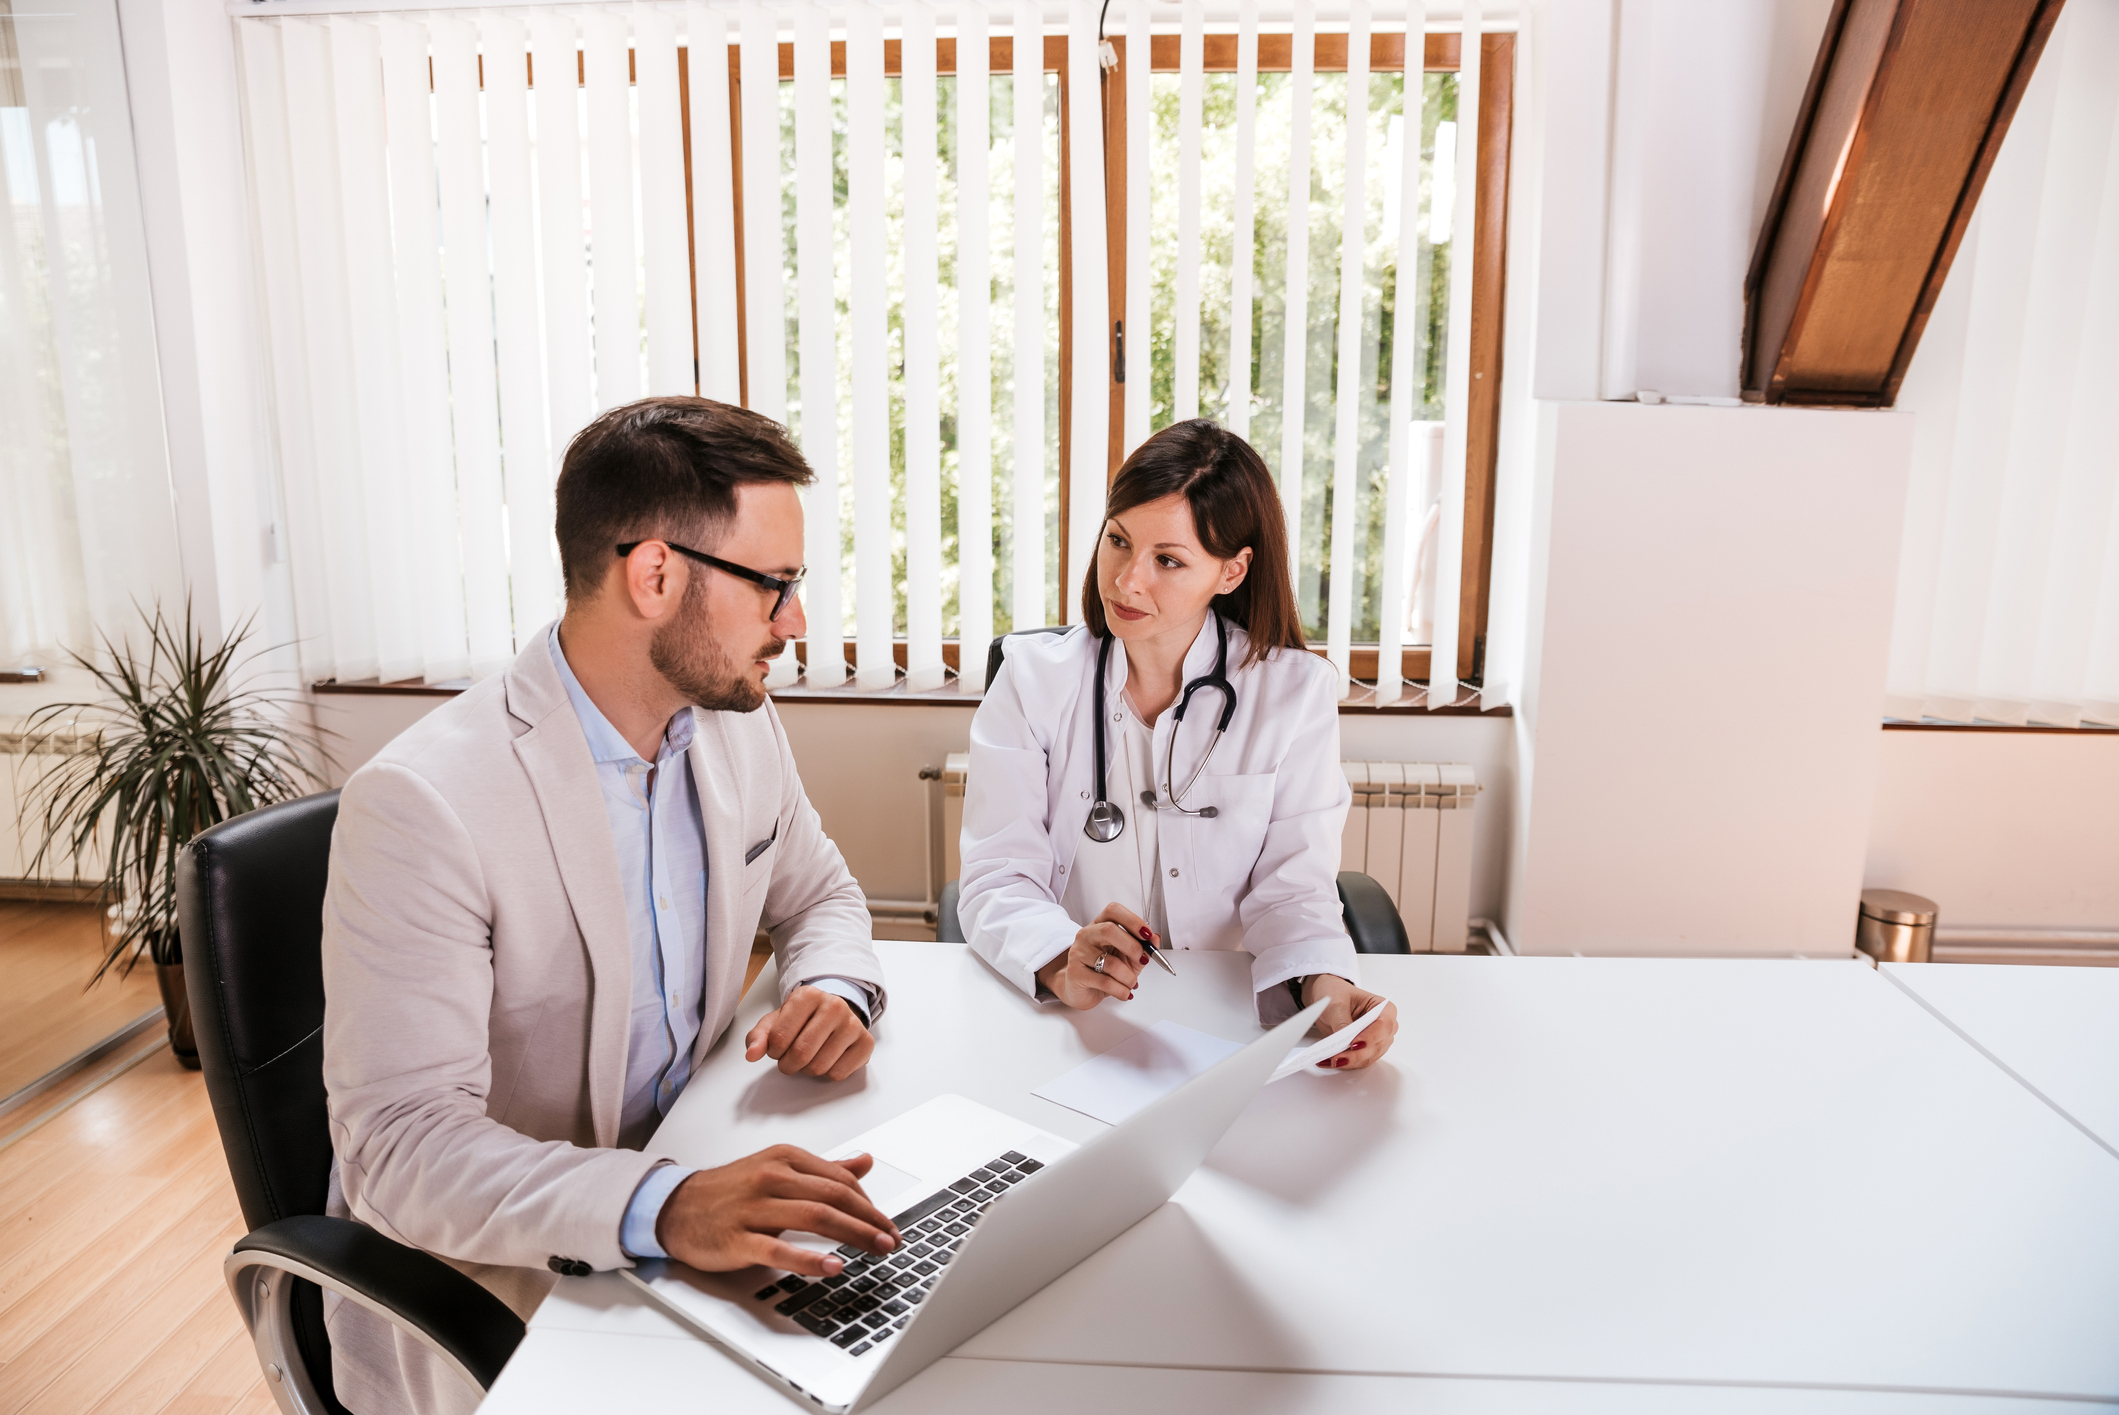 6 Things to Look For in a Locum Tenens Agency